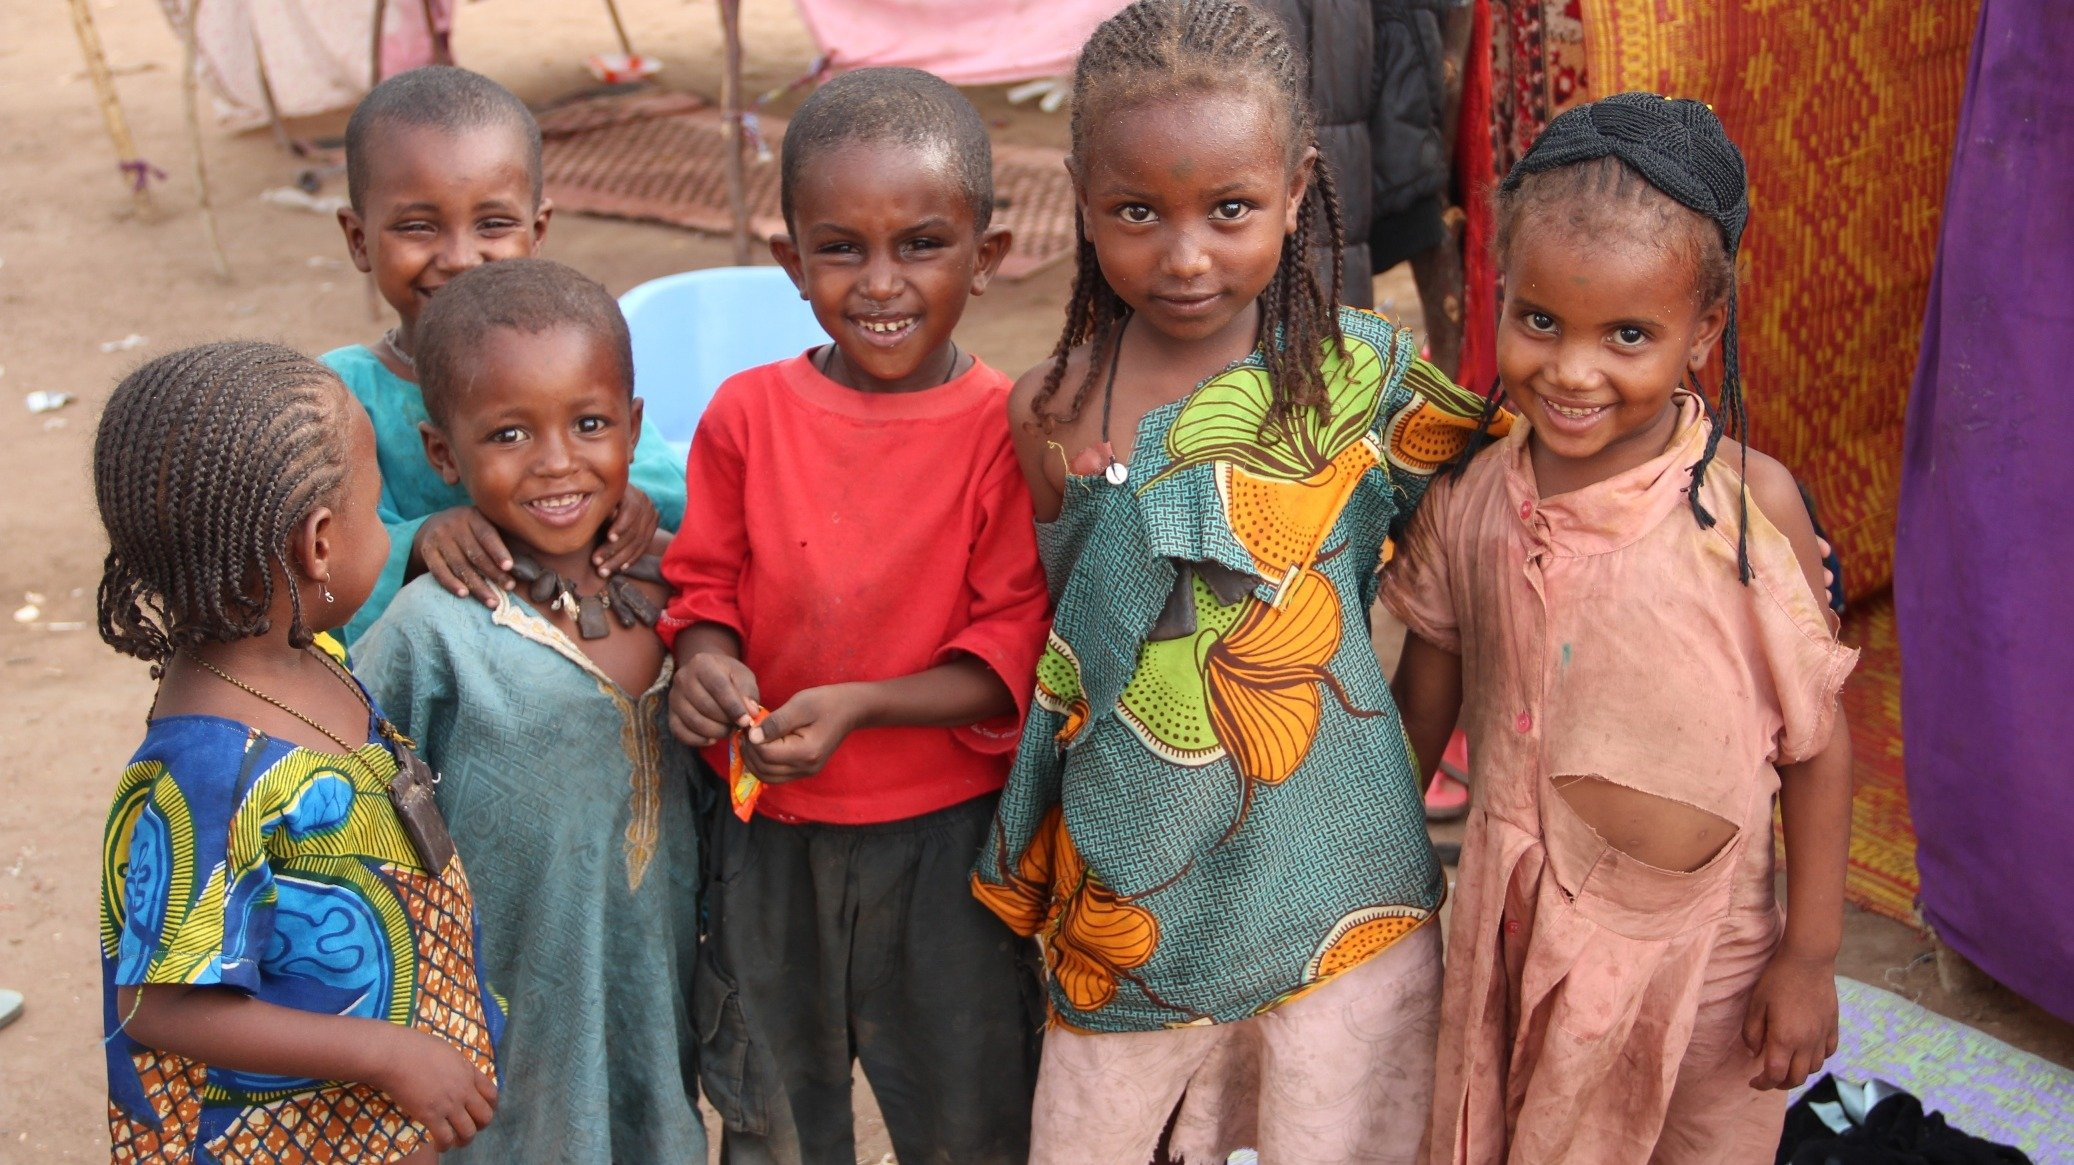 Children from CAR in southern Chad's Doyaba transit camp. May 2014.